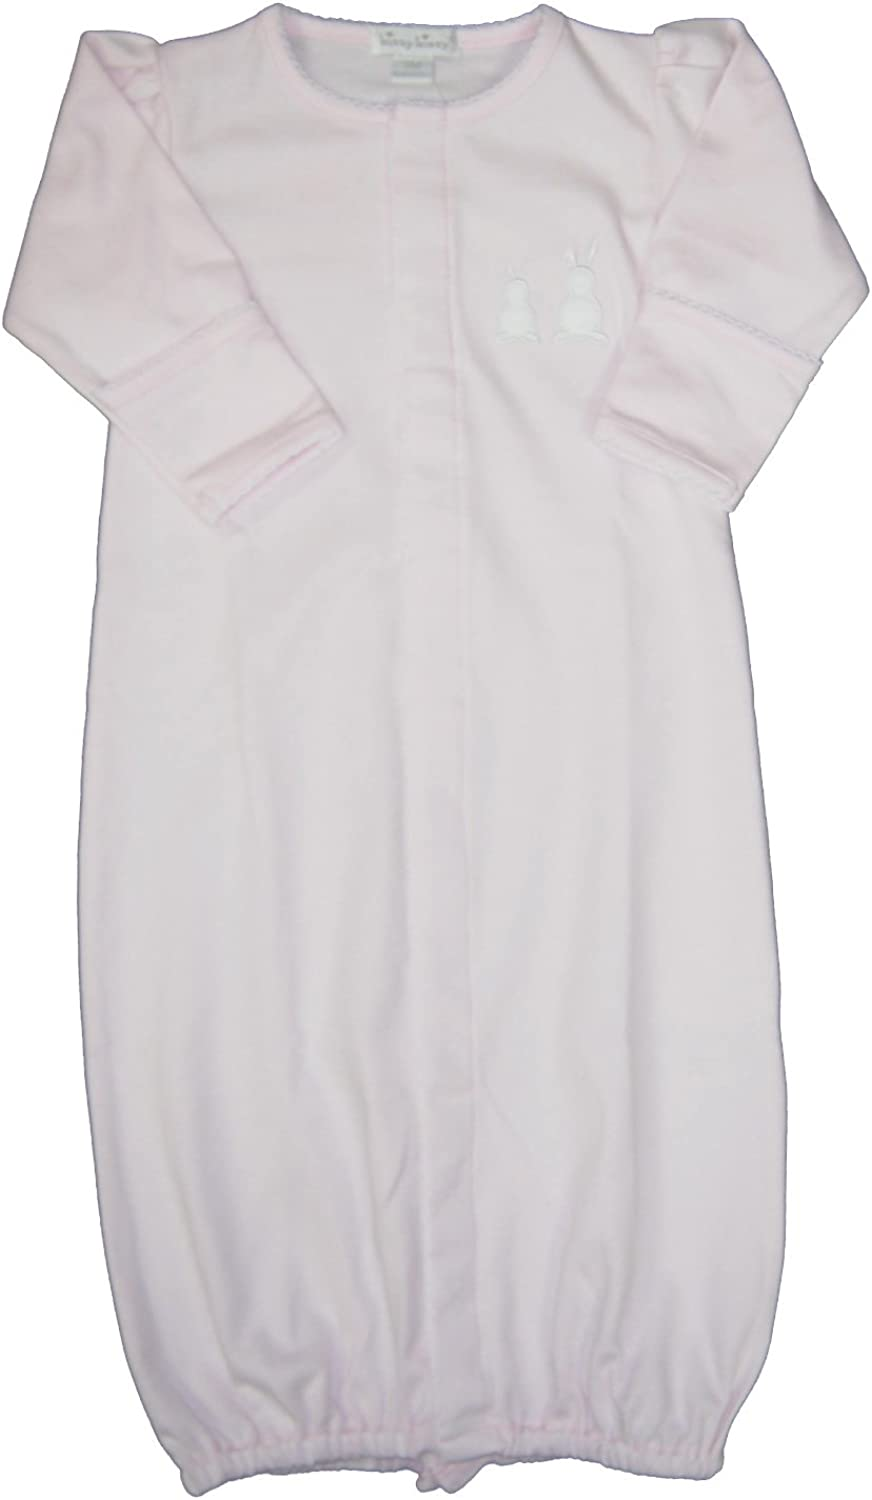 Kissy Kissy Unisex-Baby Infant Pique Bunny Ears Convertible Gown